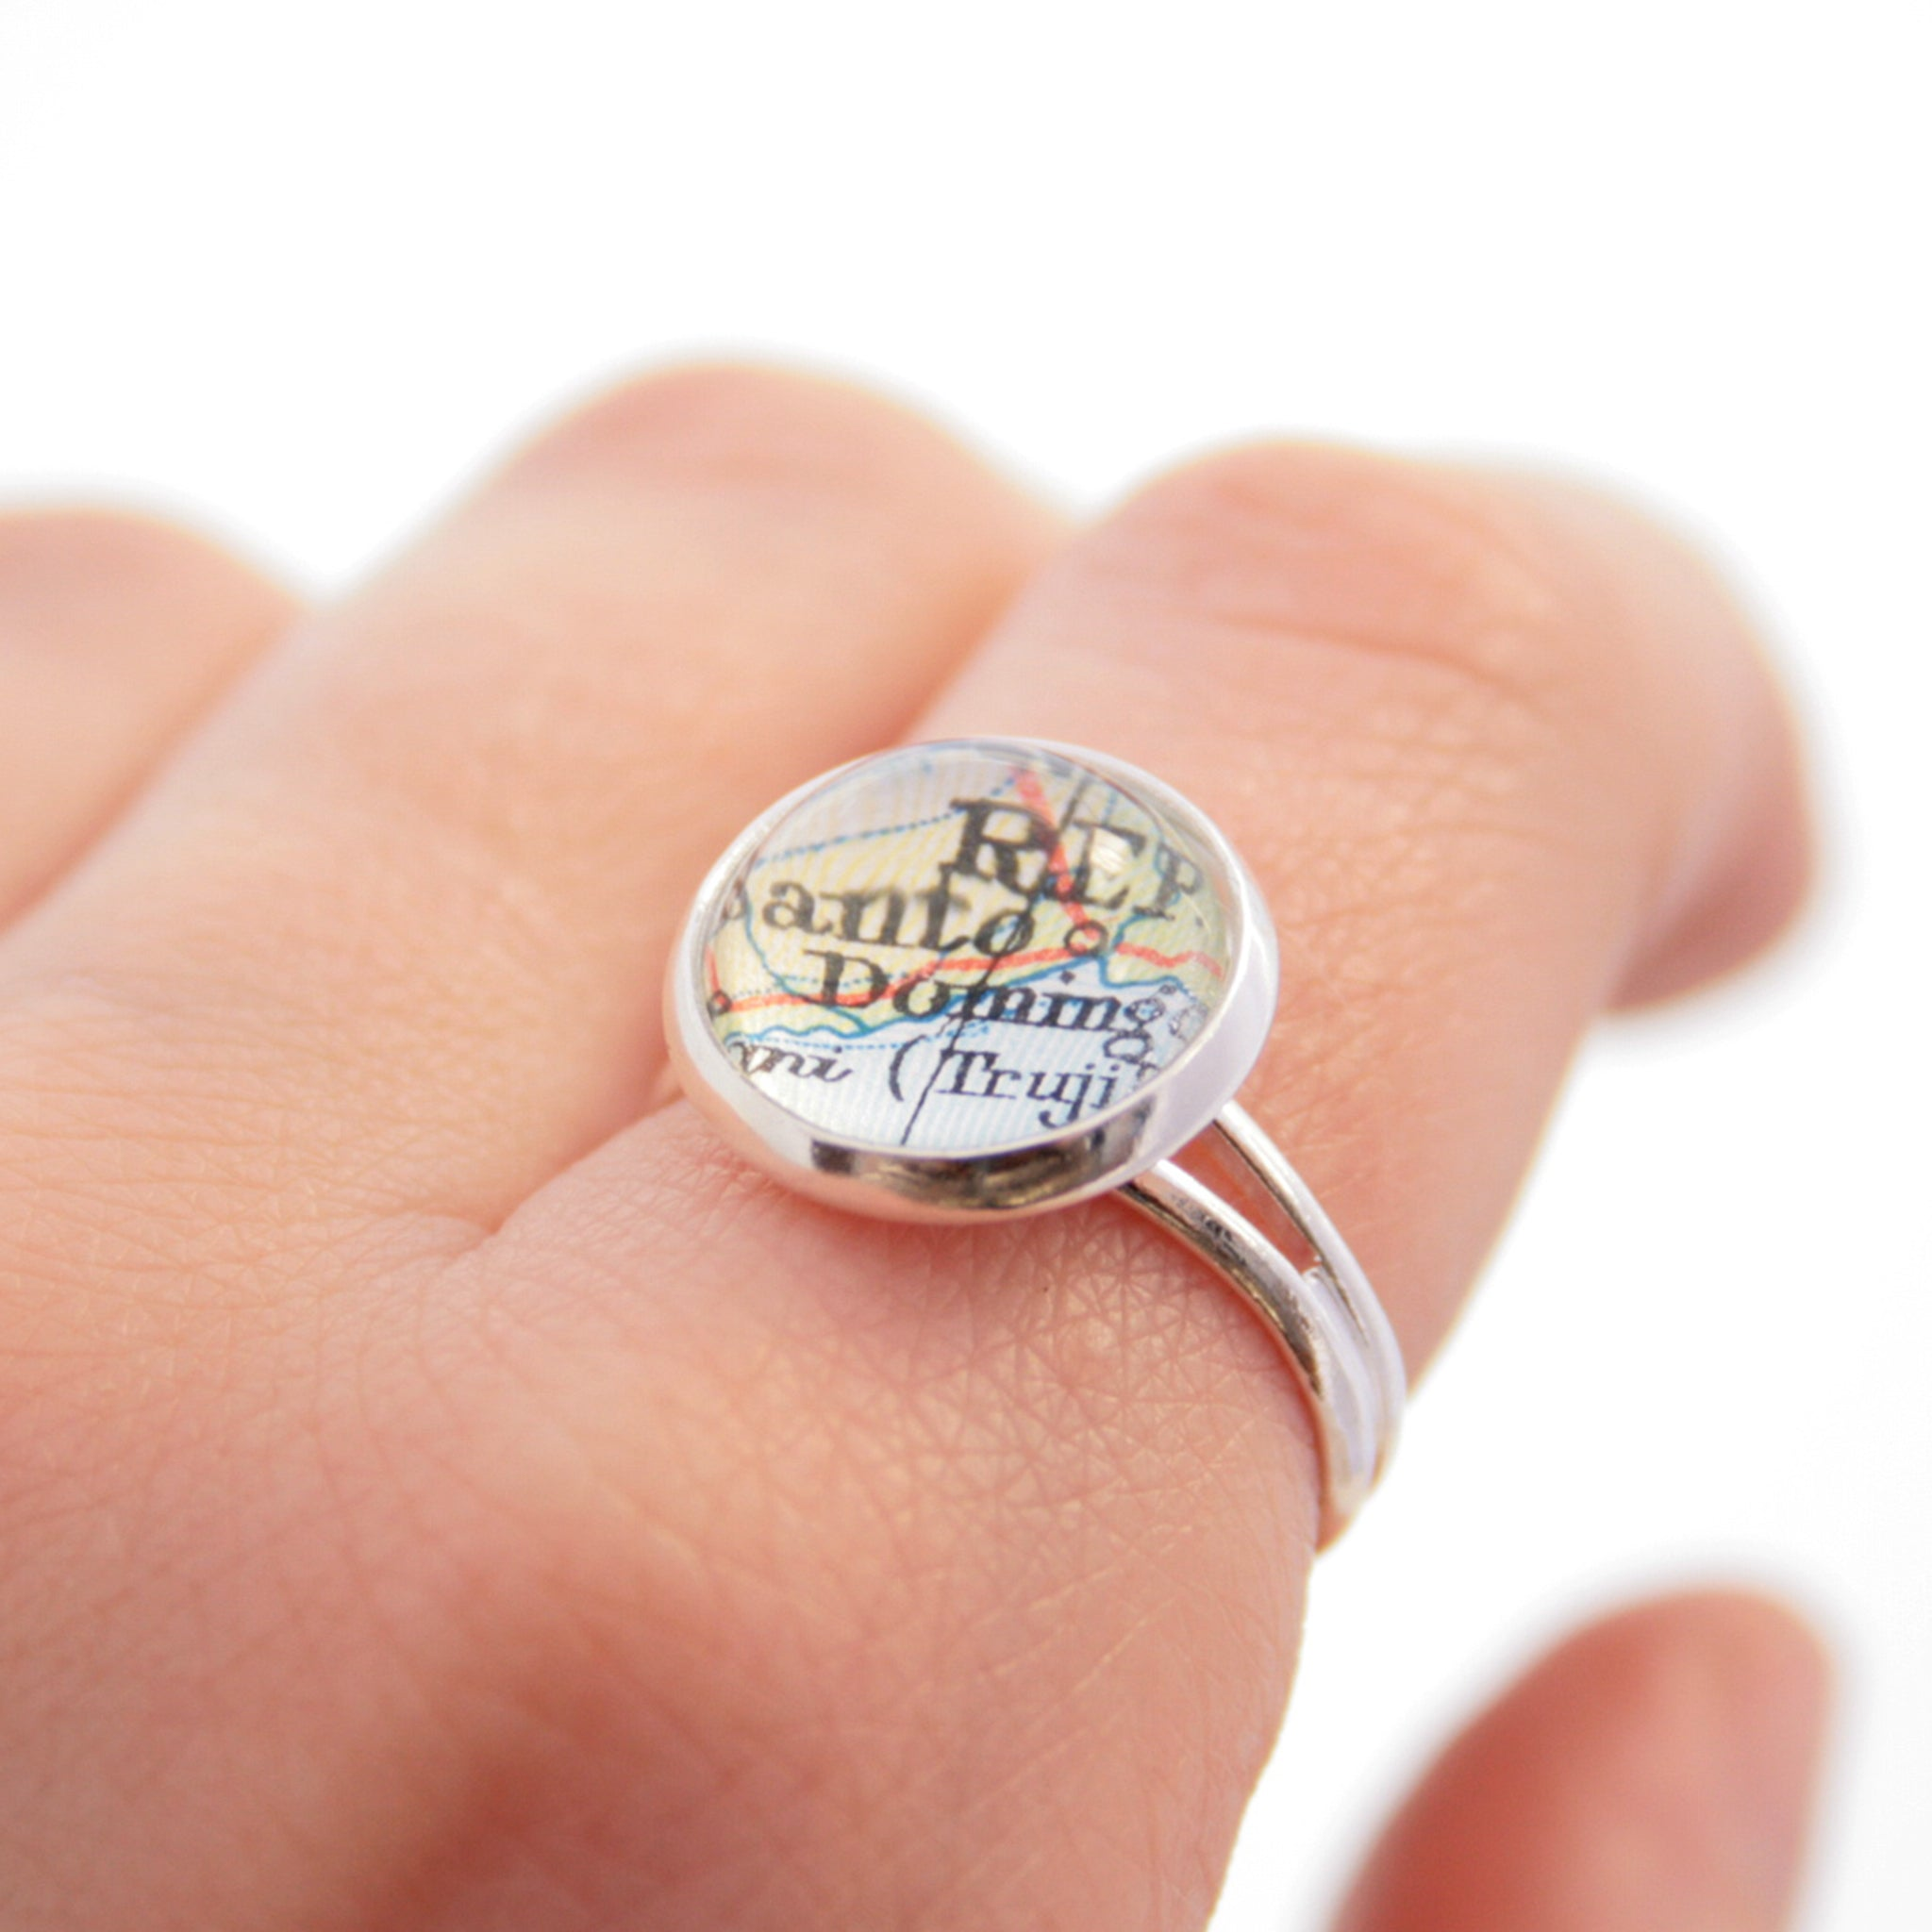 tiny wanderlust ring in silver tone personalised with map of Dominican Republic worn on hand